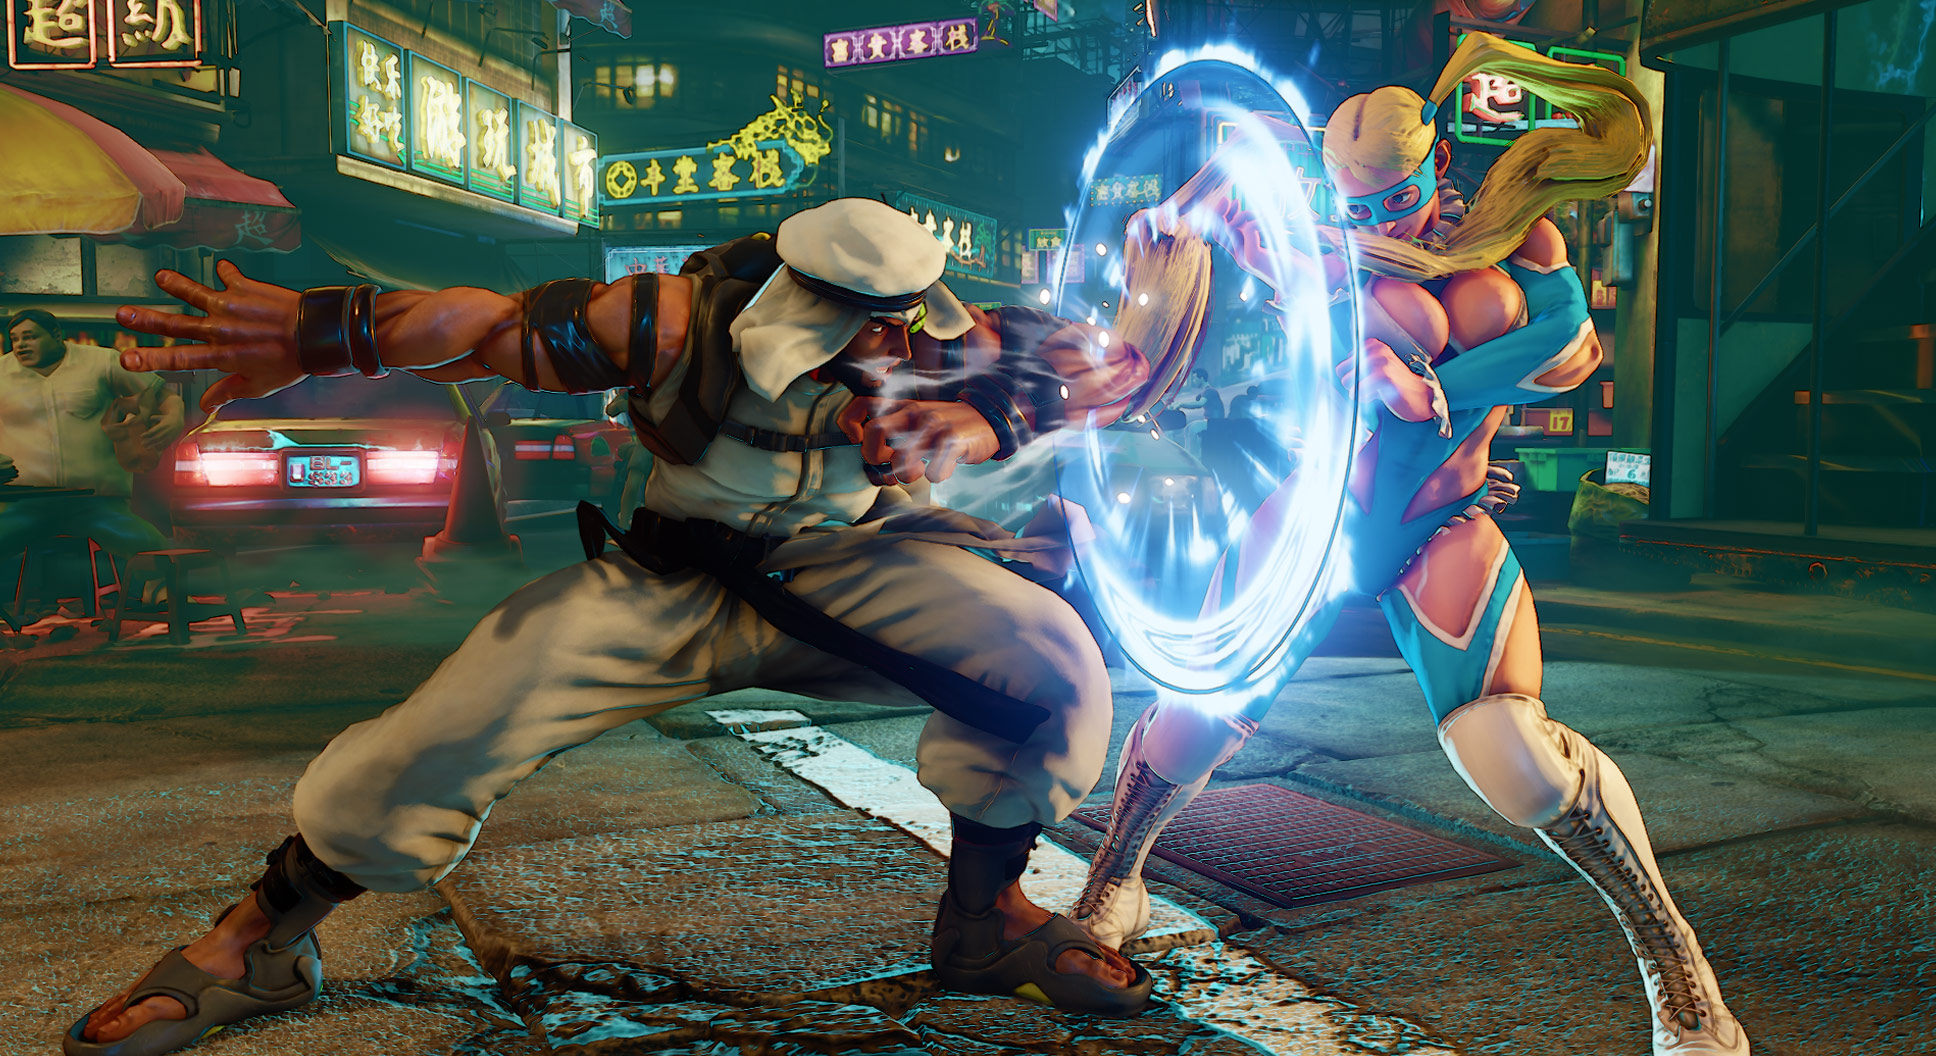 Rashid's official screen shots Street Fighter 5 Image Gallery